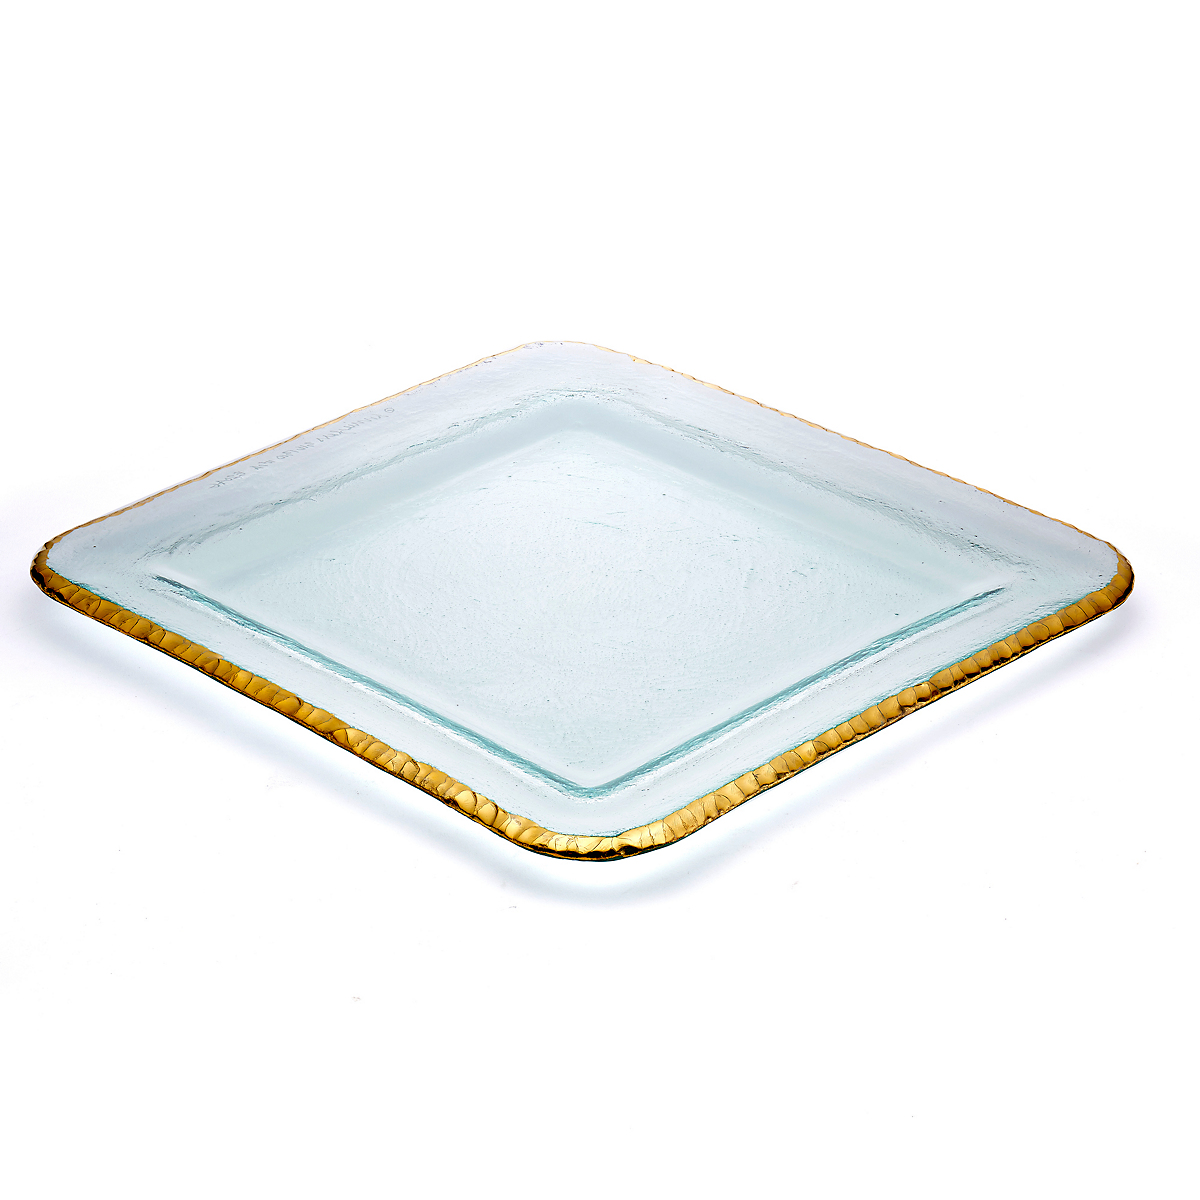 Annieglass Edgey Square Platter, Large Gold